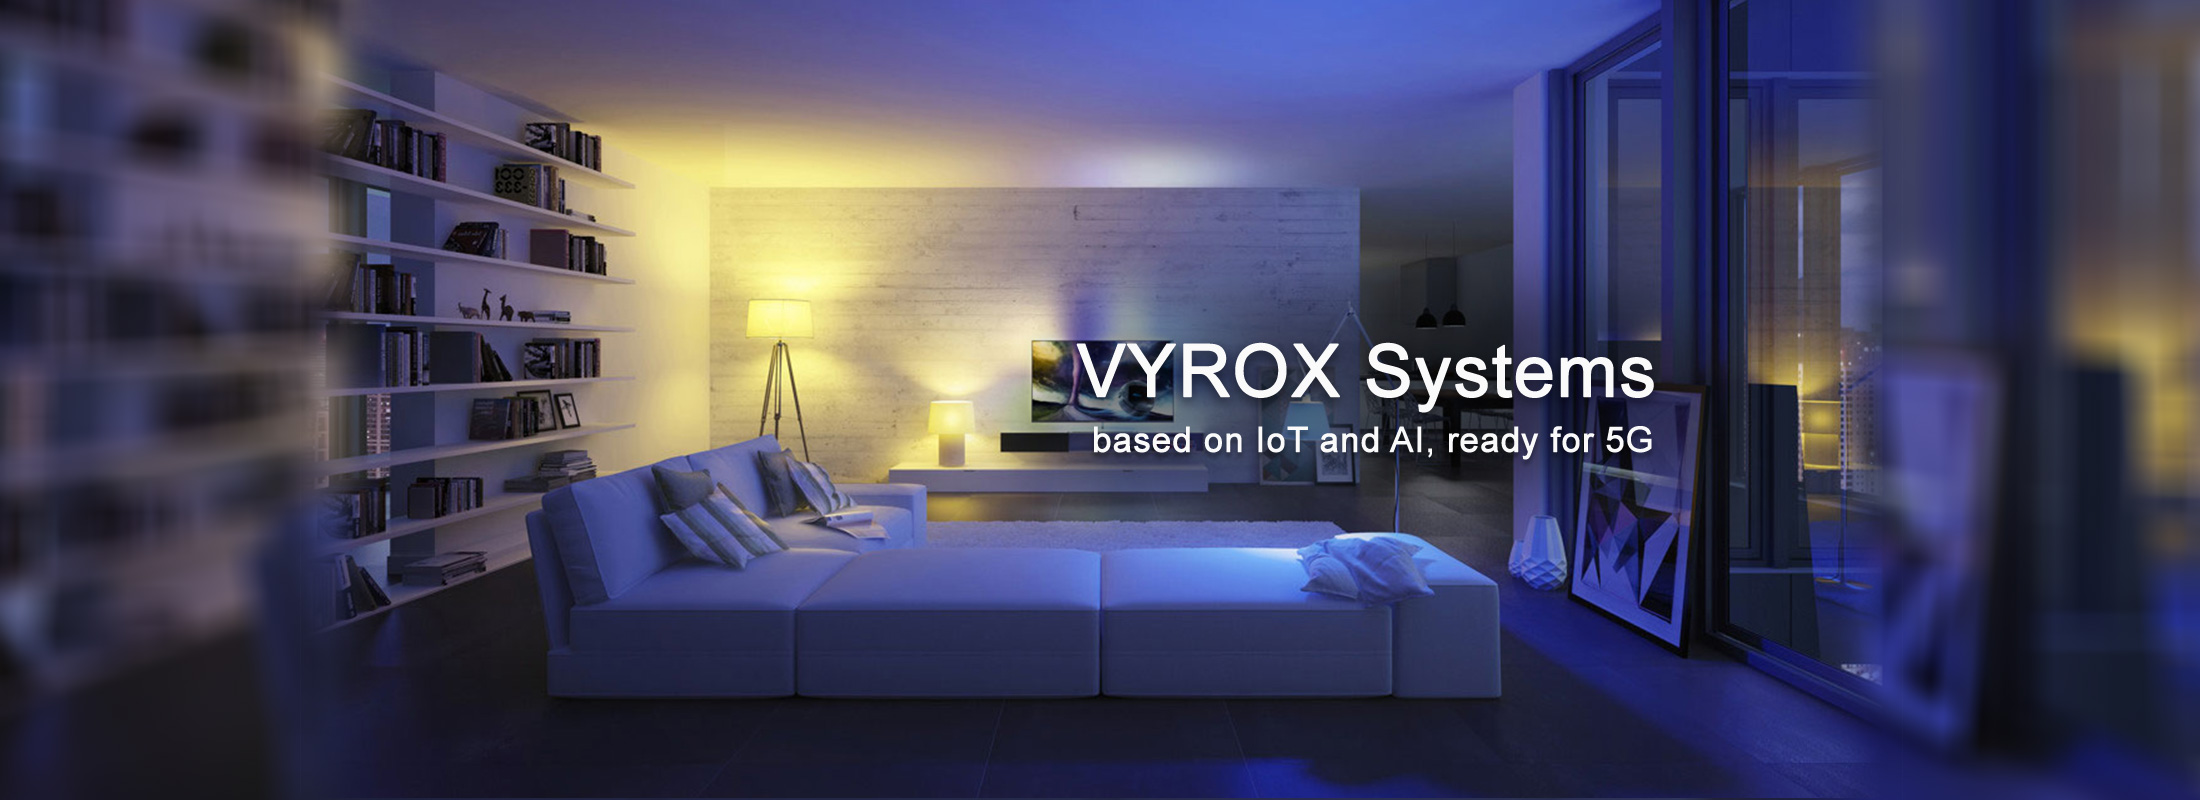 VYROX Systems based on IOT and AI, ready for 5G Technology